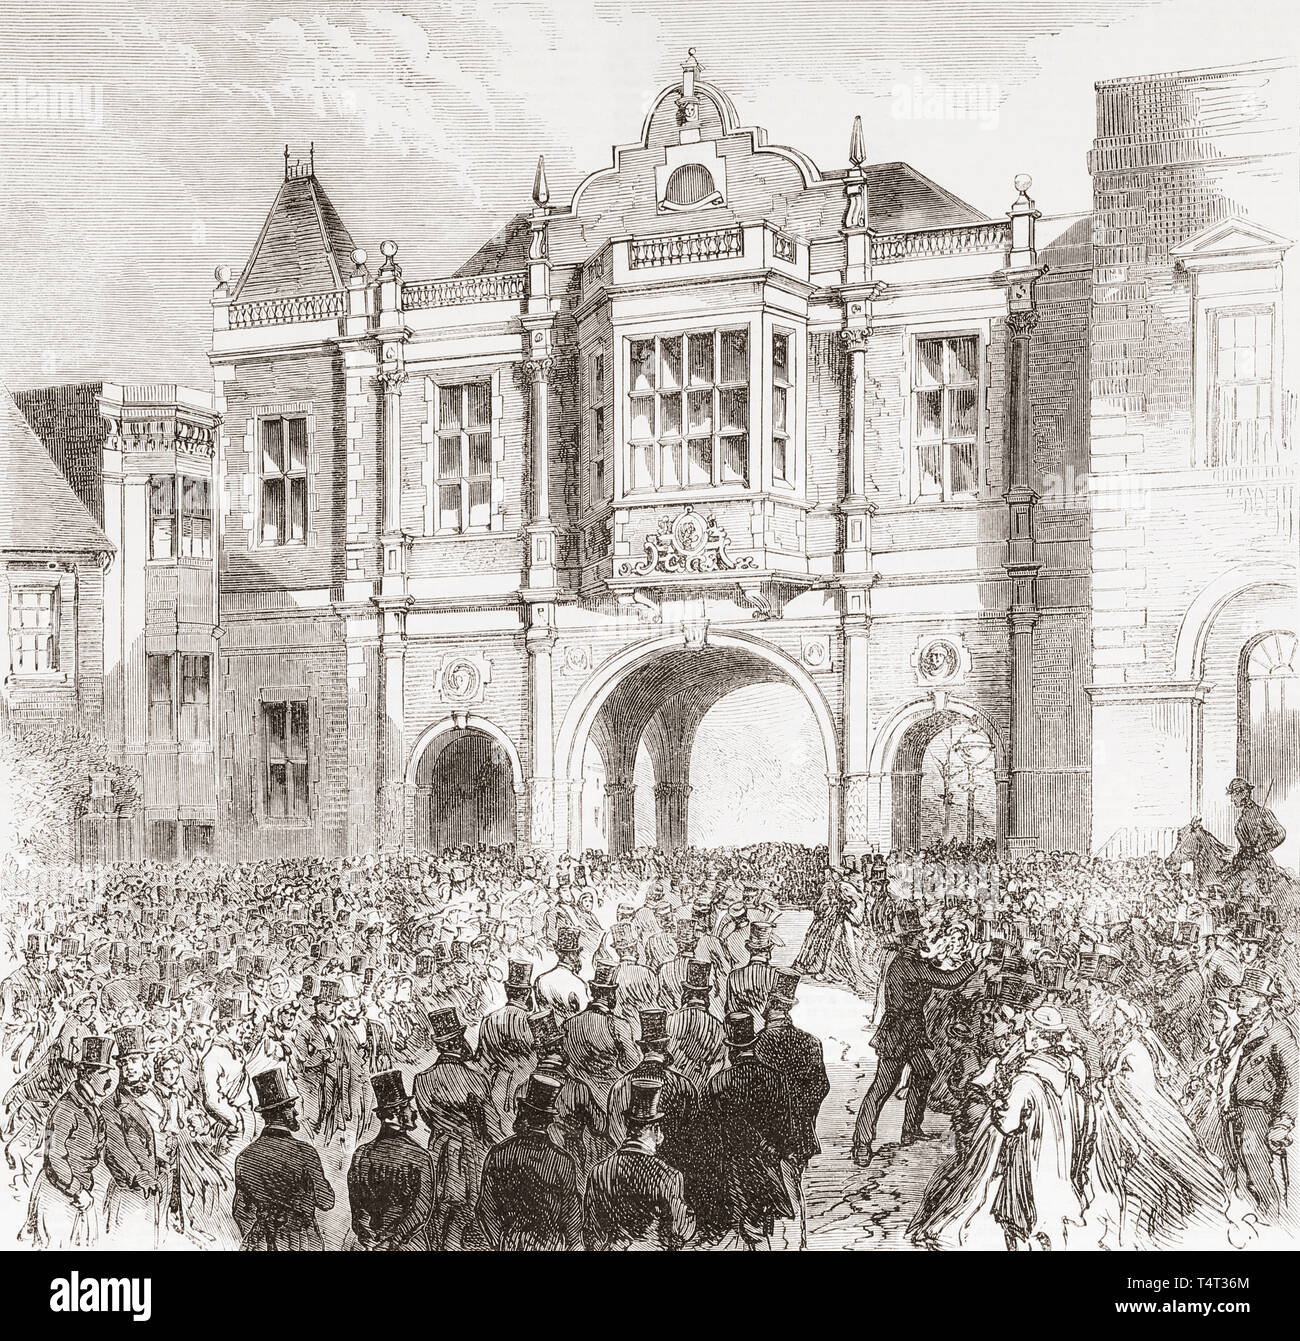 Opening of the new Corn Exchange, Aylesbury, England in the 19th century.  The corn exchange was the place where farmers and grain merchants bartered for, and fixed the price of grain.  From The Illustrated London News, published 1865. - Stock Image